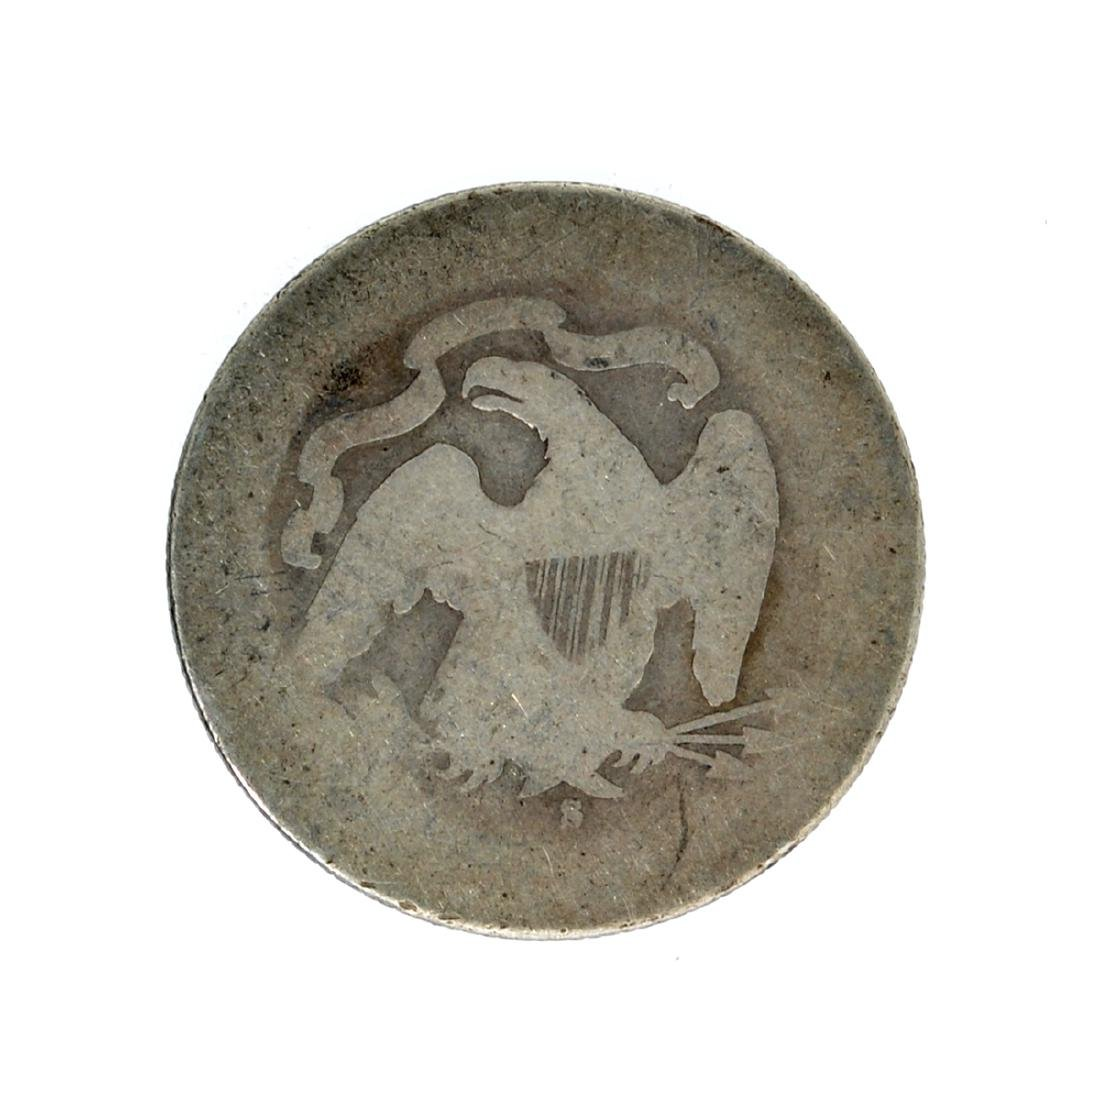 1877-S Liberty Seated Quarter Dollar Coin - 2